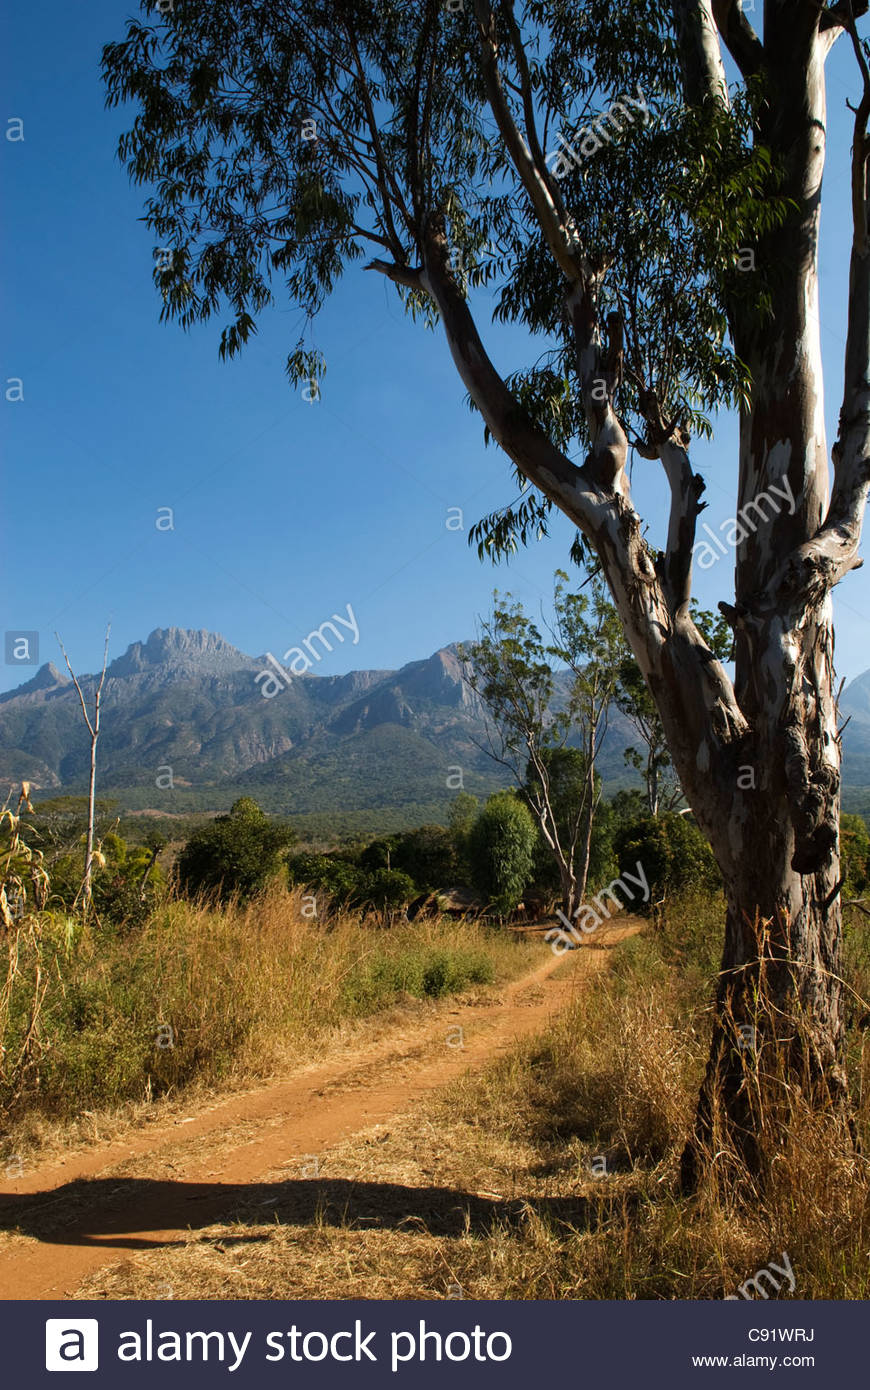 Mulanje Mountain Stock Photos Mulanje Mountain Stock Images   Alamy 870x1390